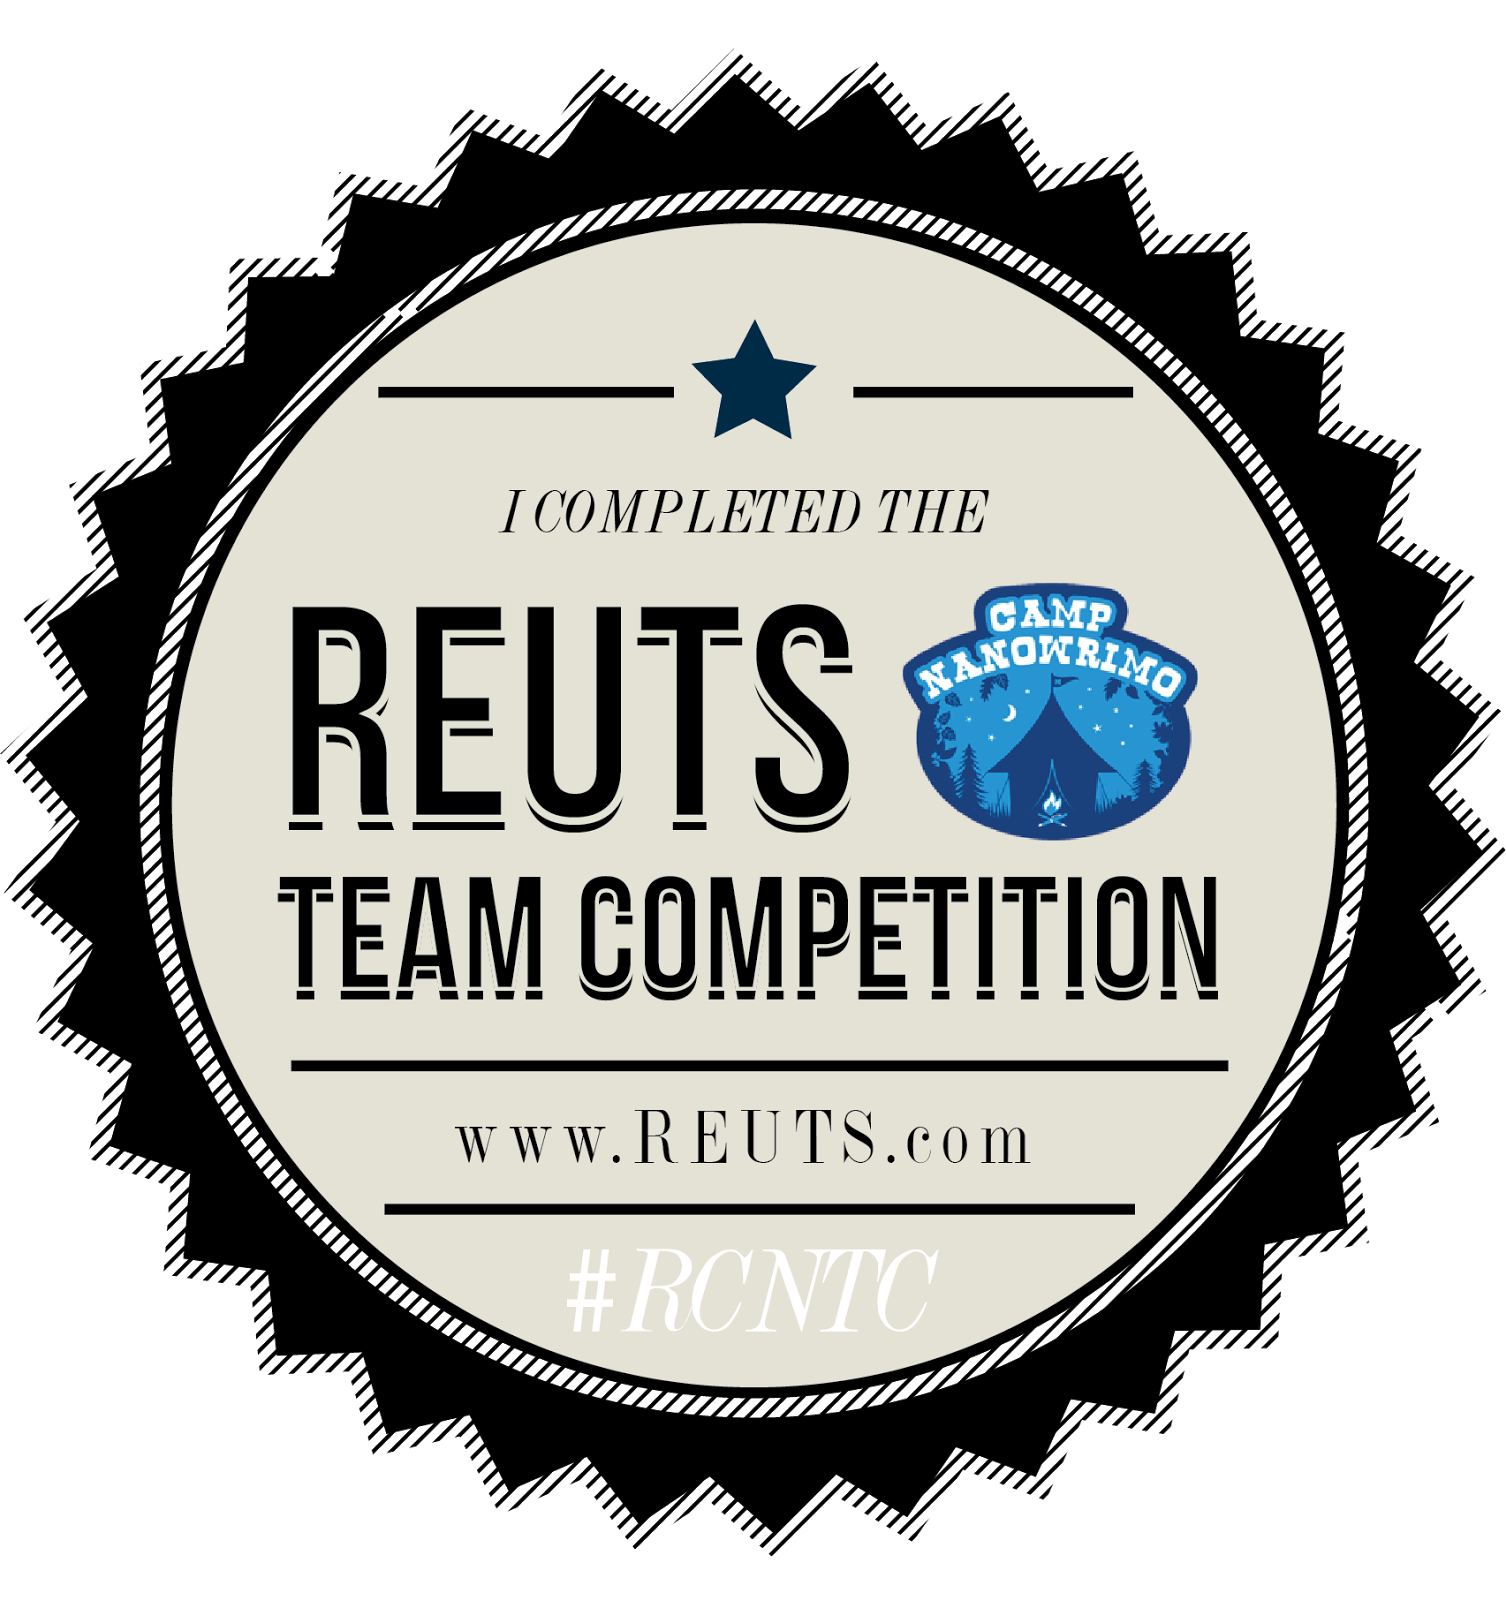 Thank you, Team REUTS!